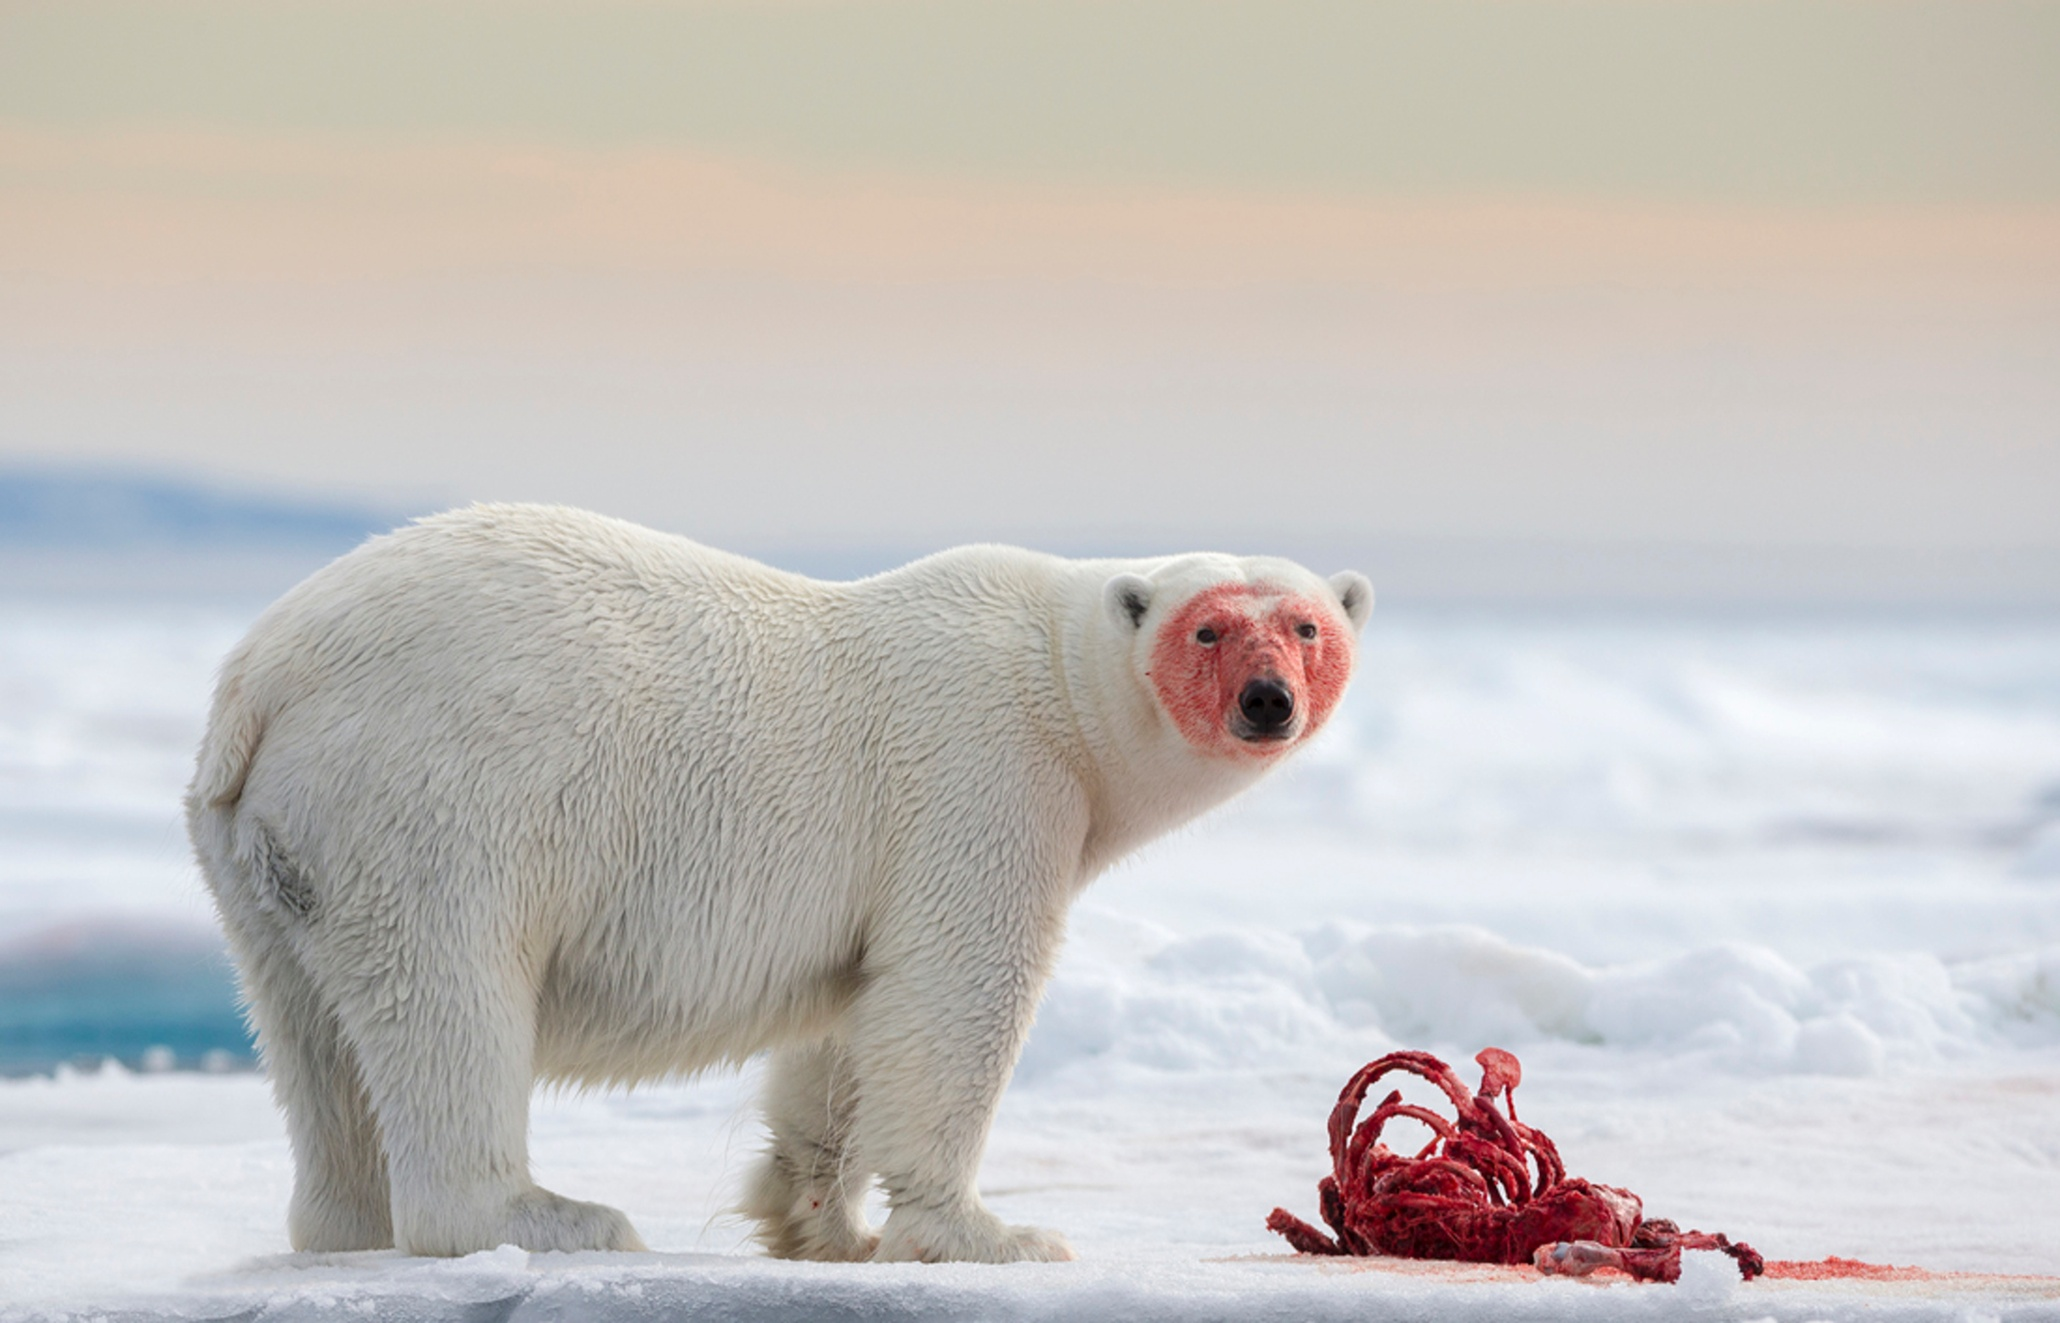 Polar Bears eat stuff. Stock image of a Polar Bear in Svalbard.